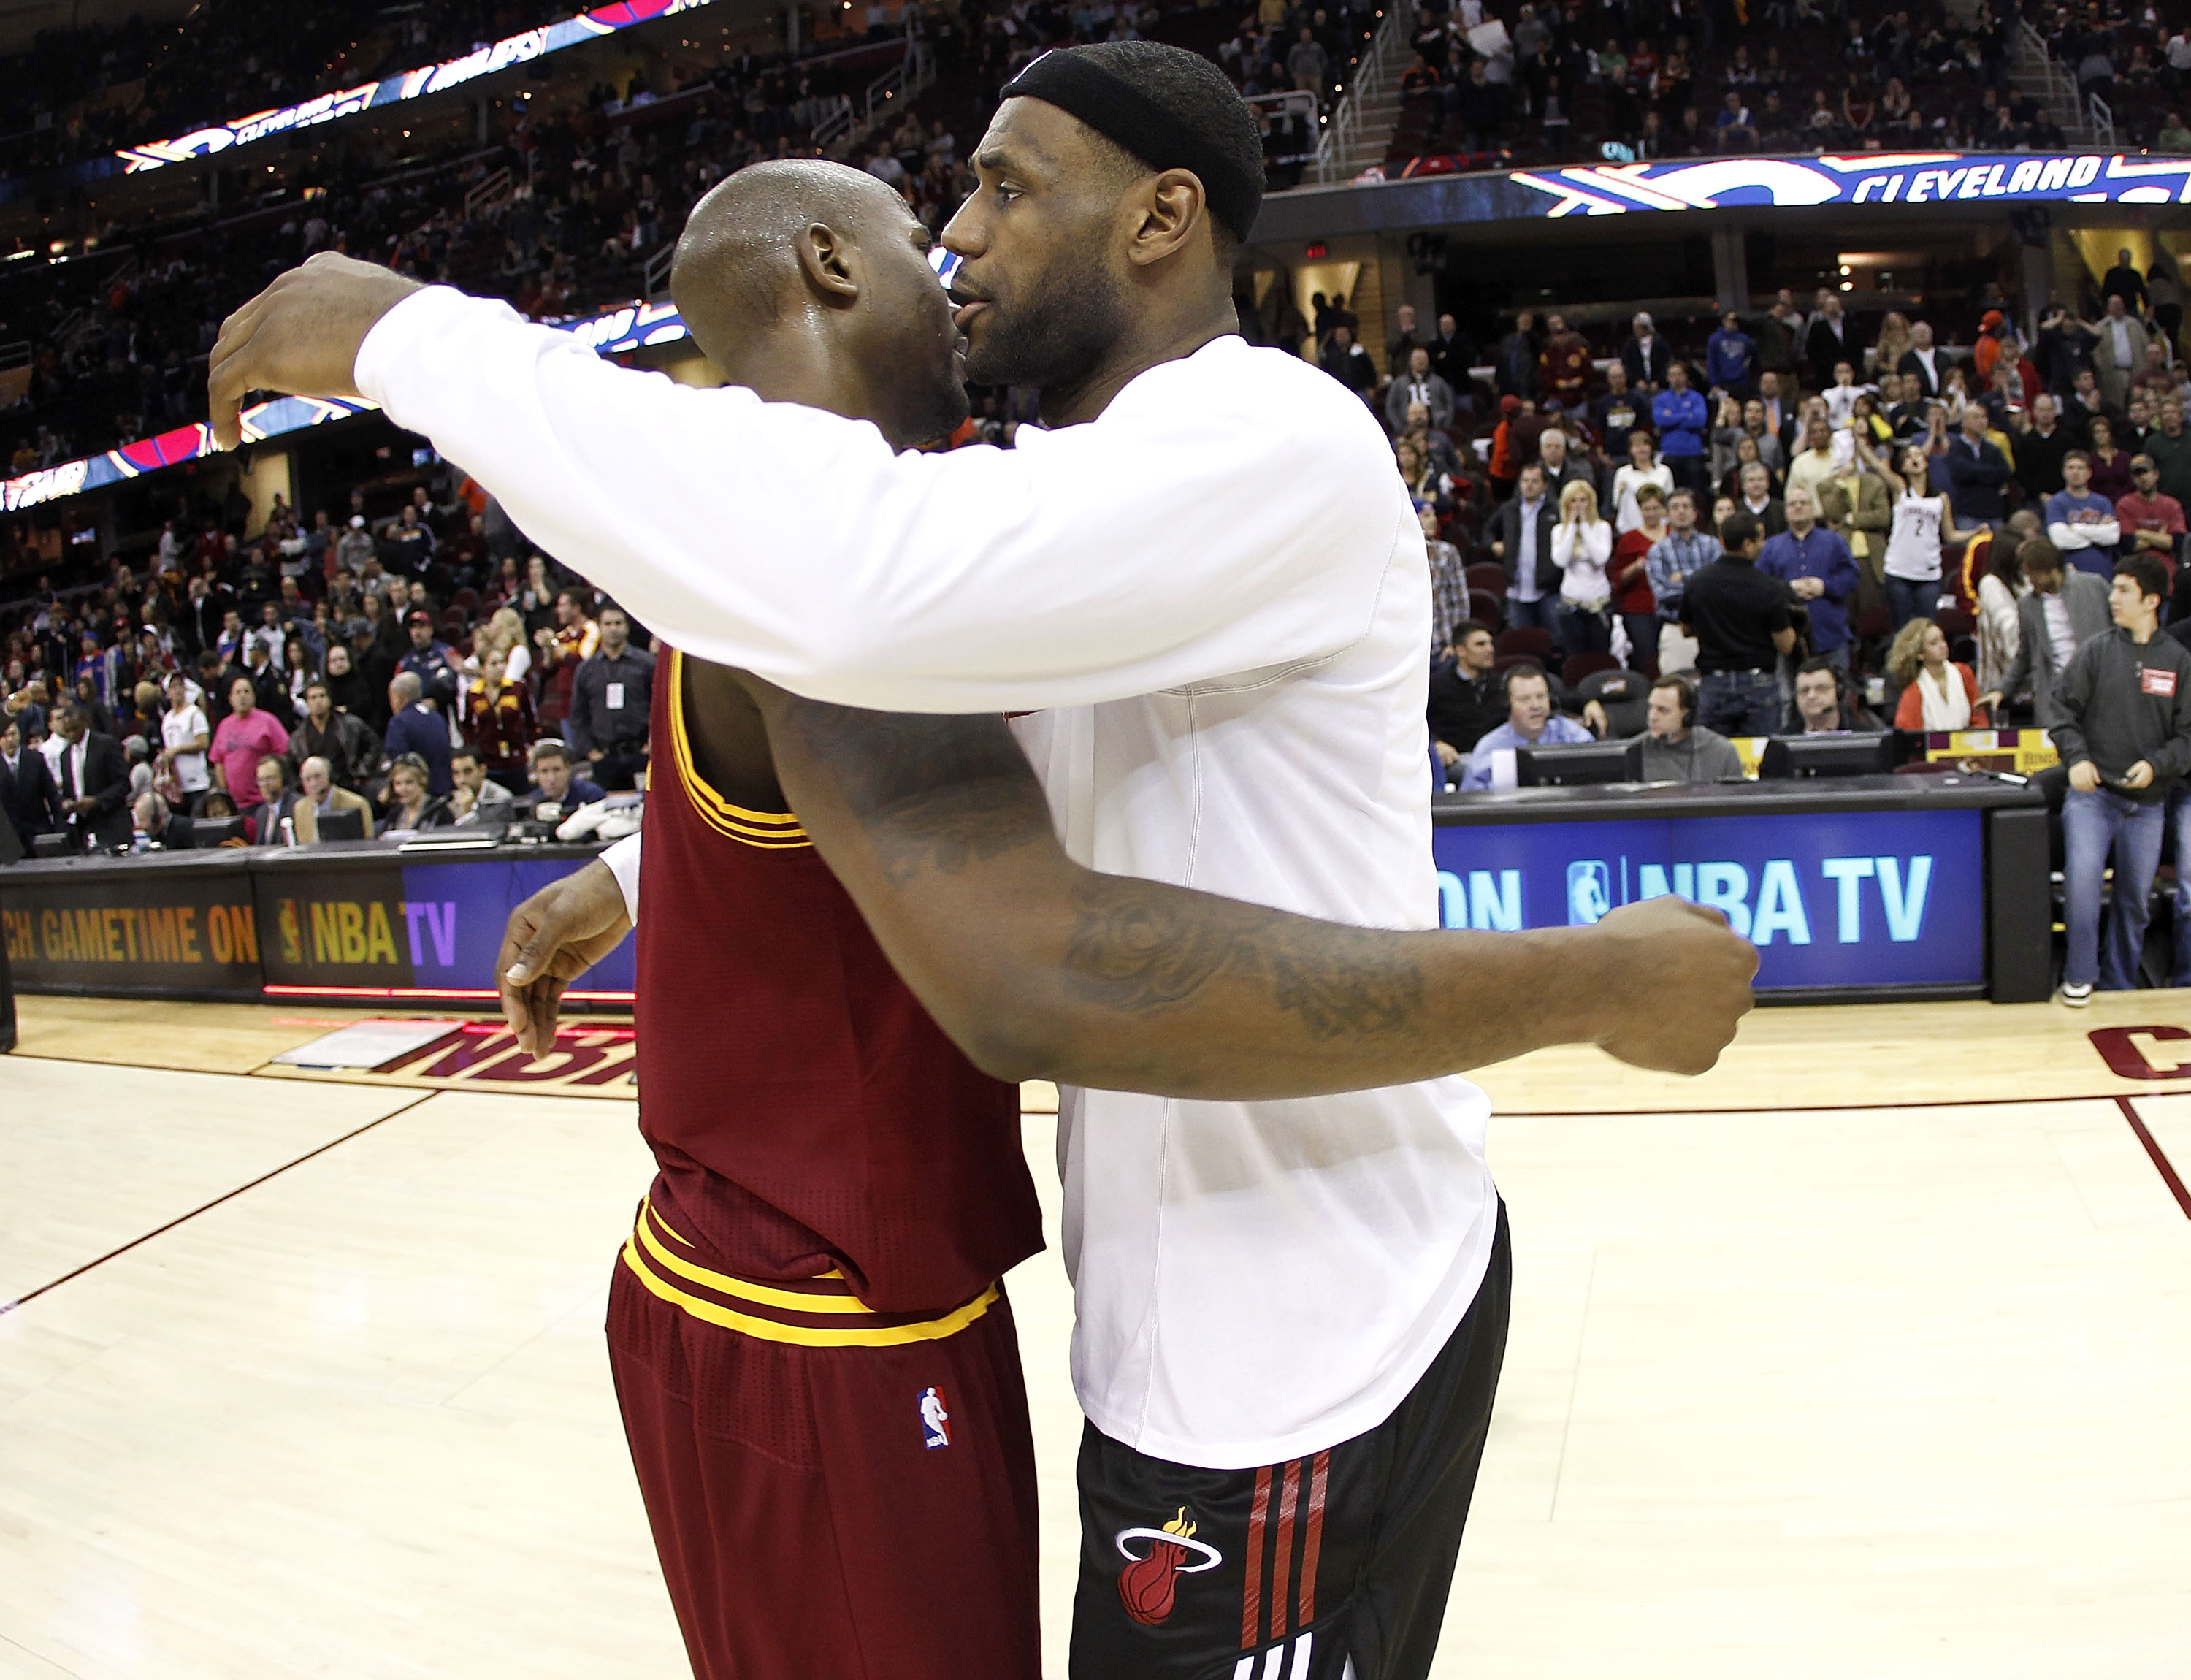 CLEVELAND, OH - DECEMBER 02:  LeBron James #6 of the Miami Heat hugs Jawad Williams after a 118-90 victory over the Cleveland Cavaliers at Quicken Loans Arena on December 2, 2010 in Cleveland, Ohio. NOTE TO USER: User expressly acknowledges and agrees tha